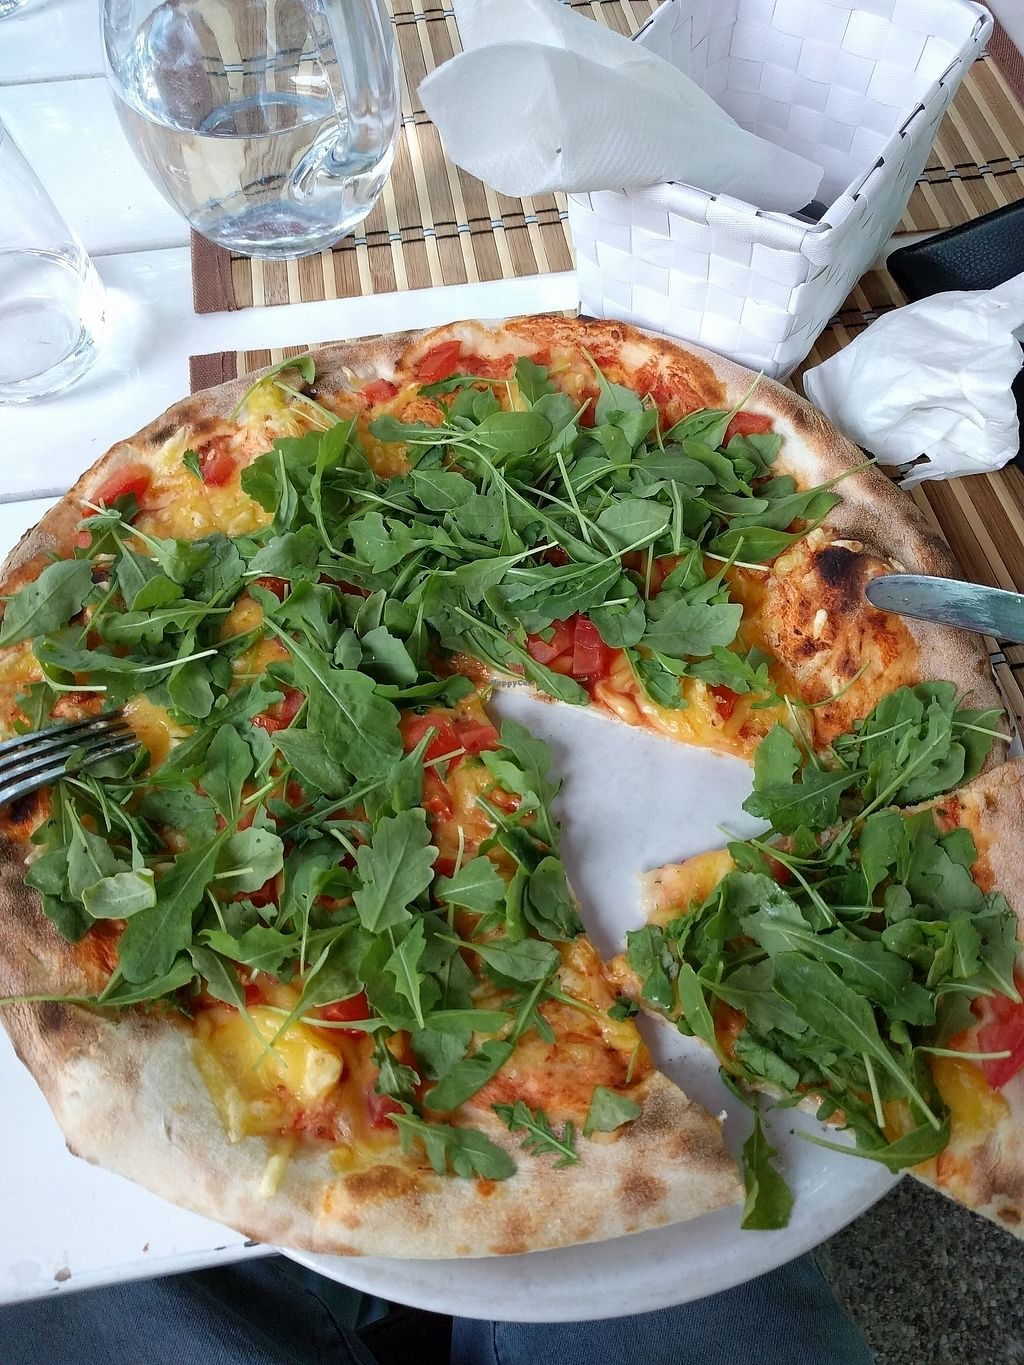 """Photo of Pizzerija Romano  by <a href=""""/members/profile/Squigly"""">Squigly</a> <br/>Veggie aurogola pizza <br/> July 10, 2017  - <a href='/contact/abuse/image/76507/278808'>Report</a>"""